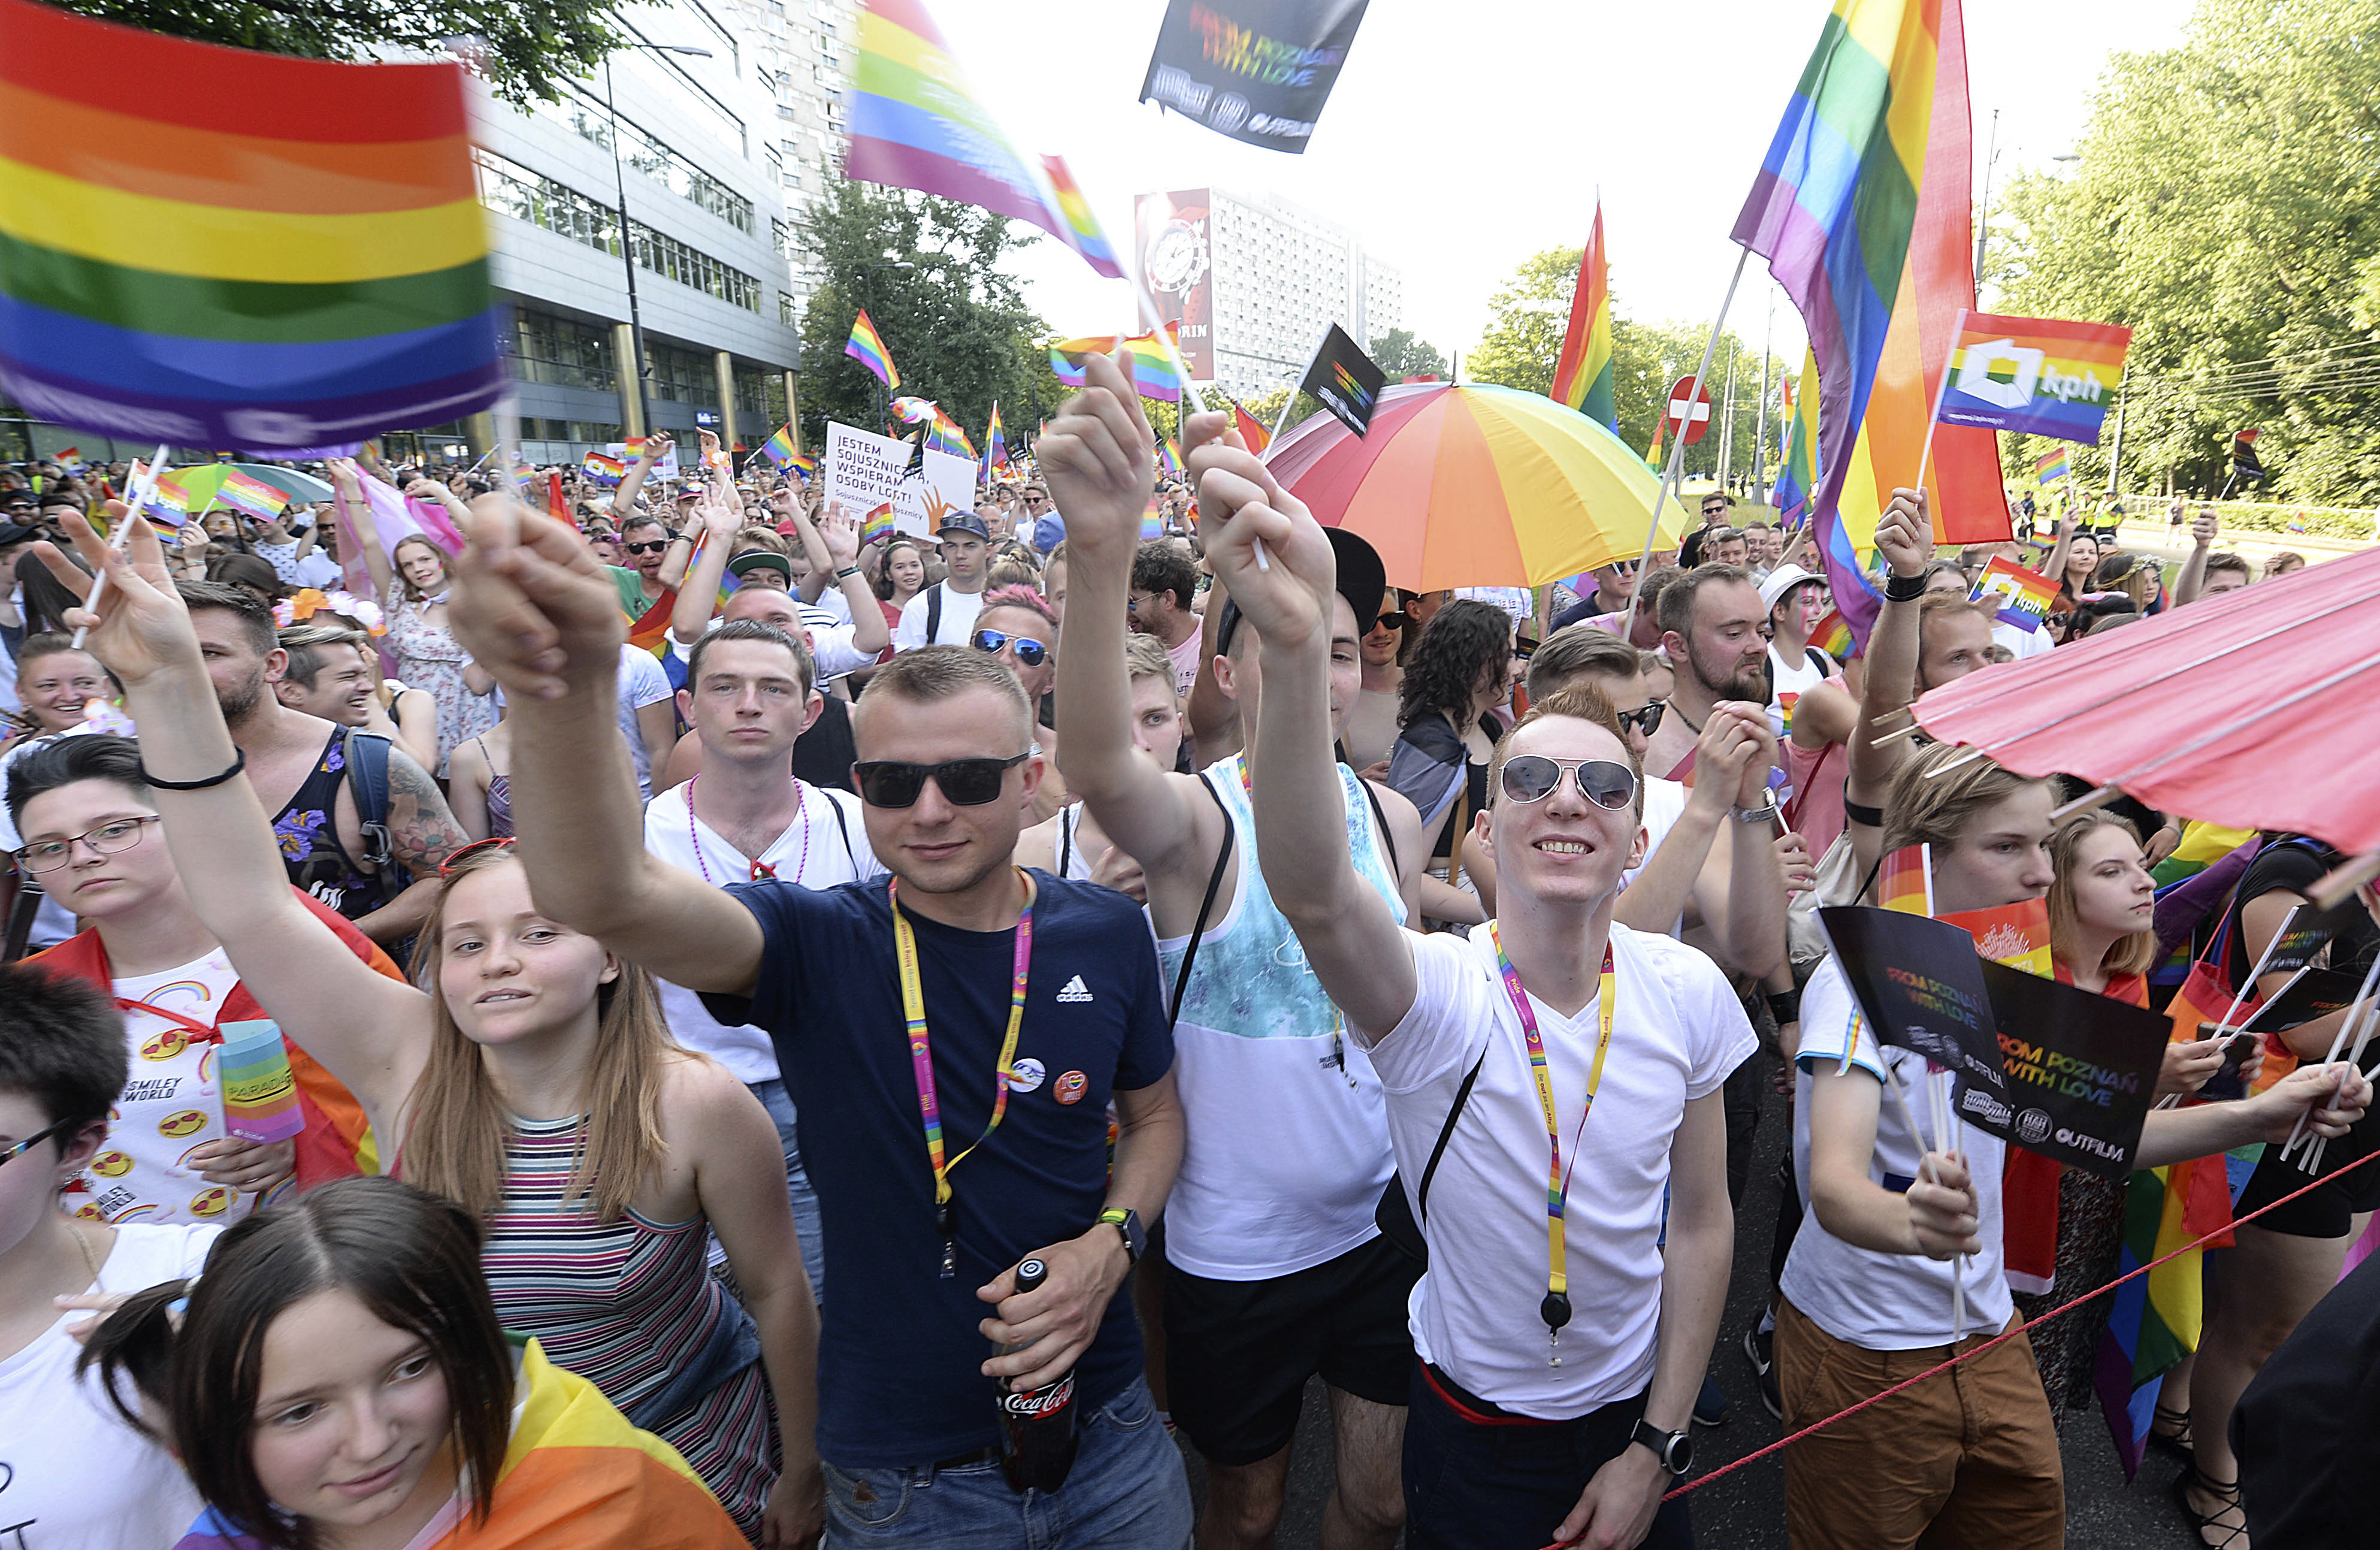 People take part in a gay pride parade in Warsaw, Poland, June 9, 2018. The pride celebrations come as LGBTQ activists say a conservative turn in Poland is only motivating them to fight harder for their rights.